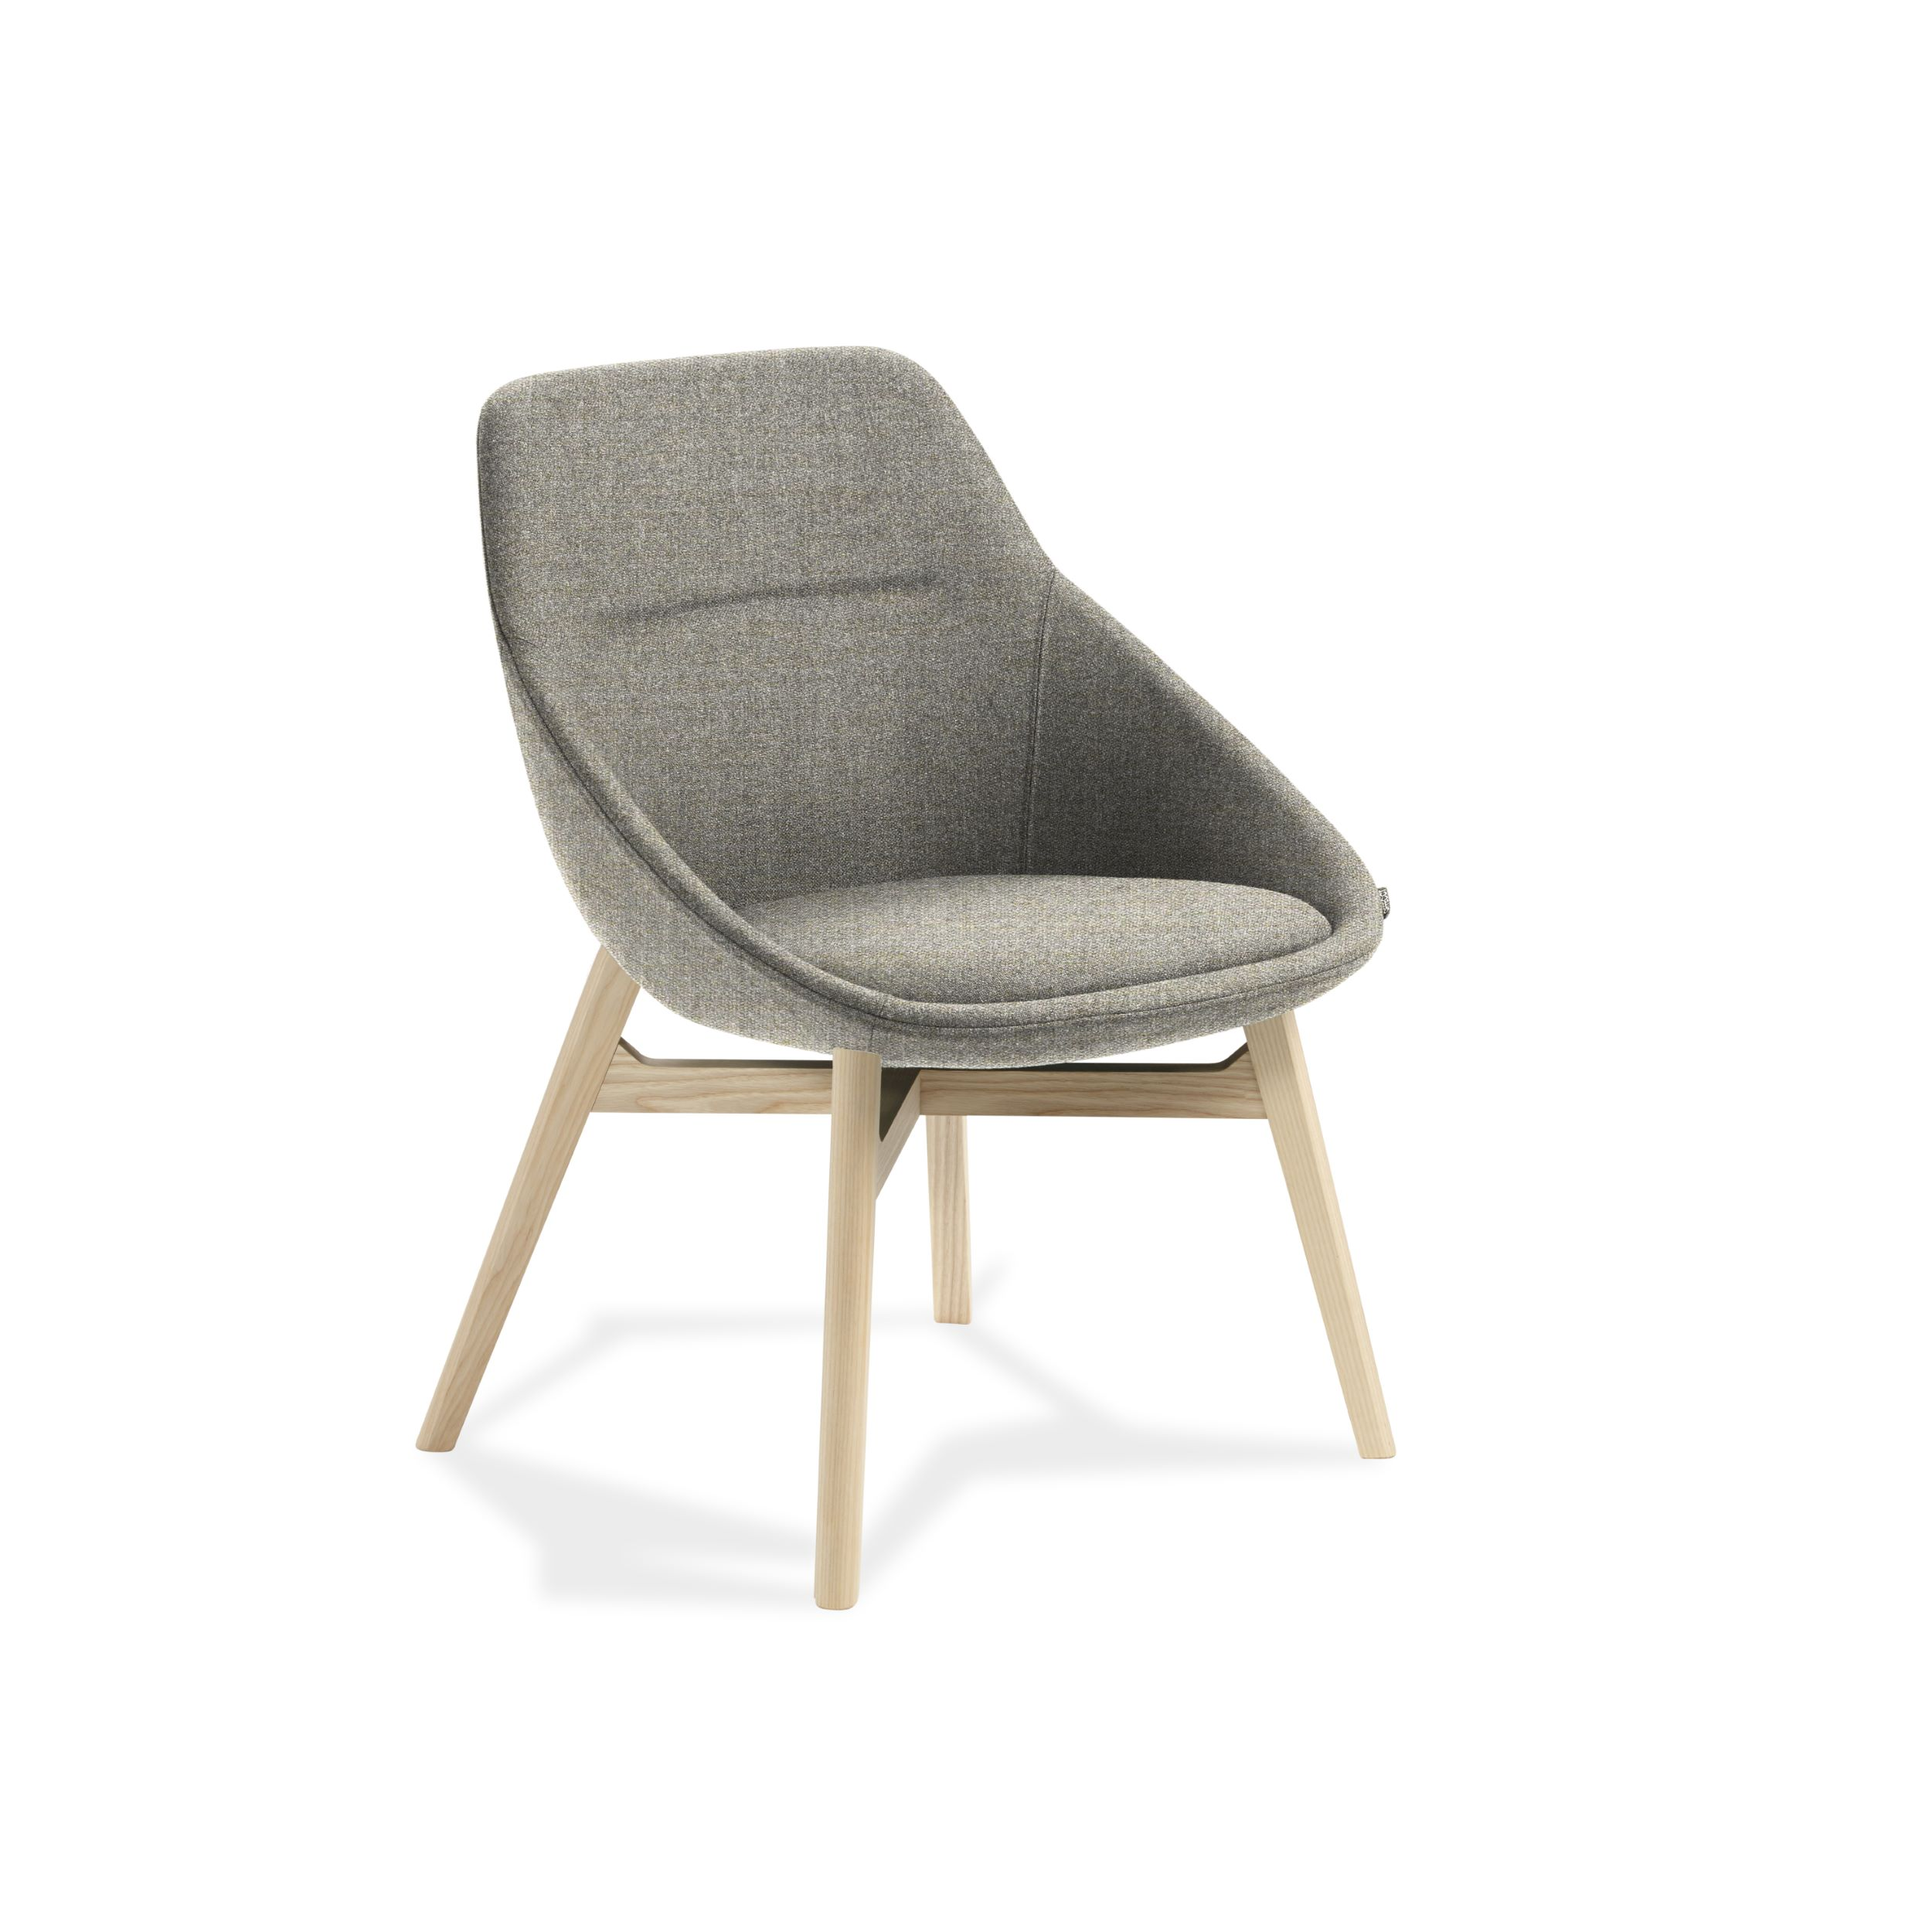 Ezy Wood Low Chair Furniture By Christophe Pillet